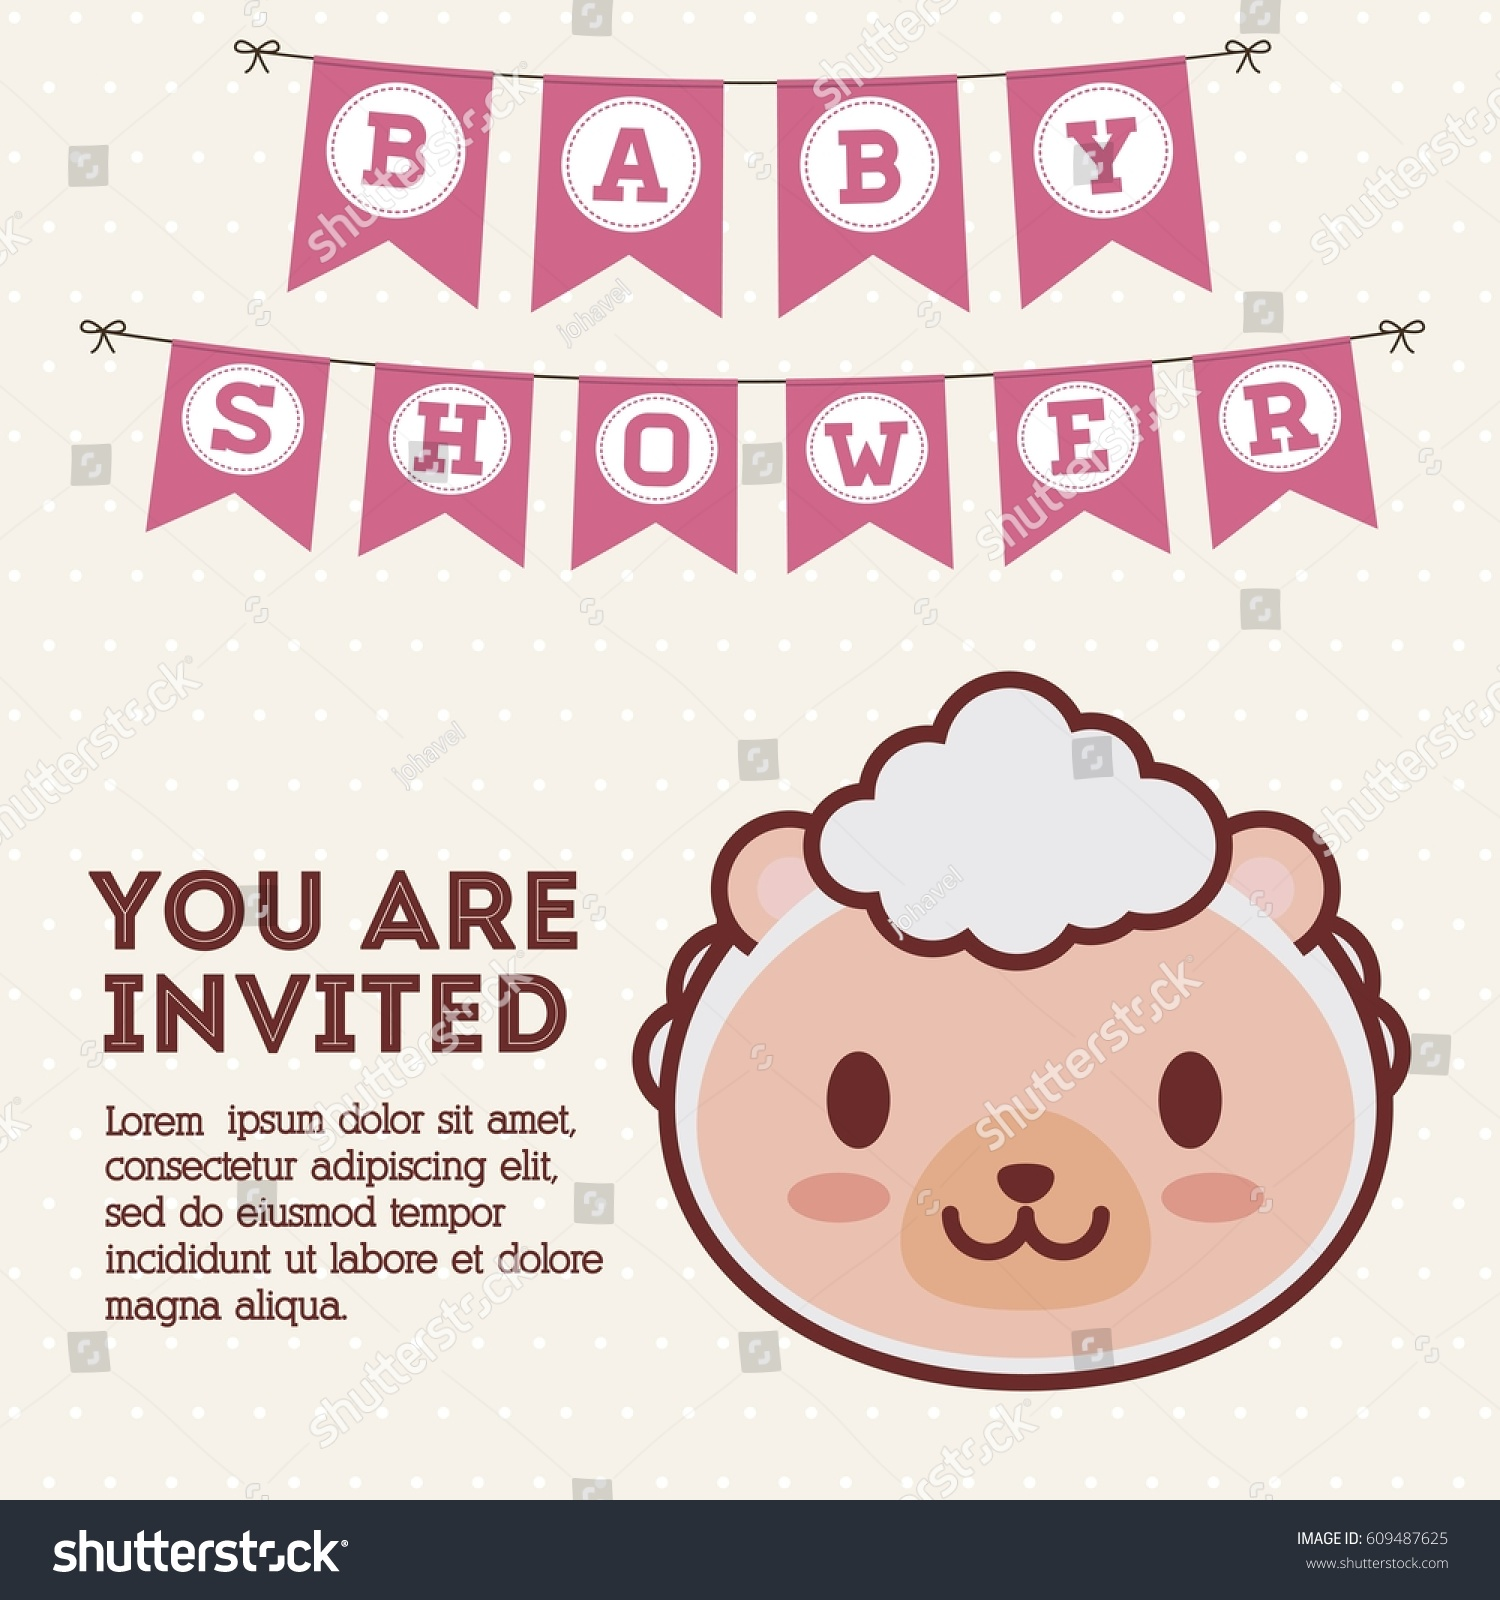 Baby Shower Invitation Sheep Icon Colorful Stock Vector HD (Royalty ...